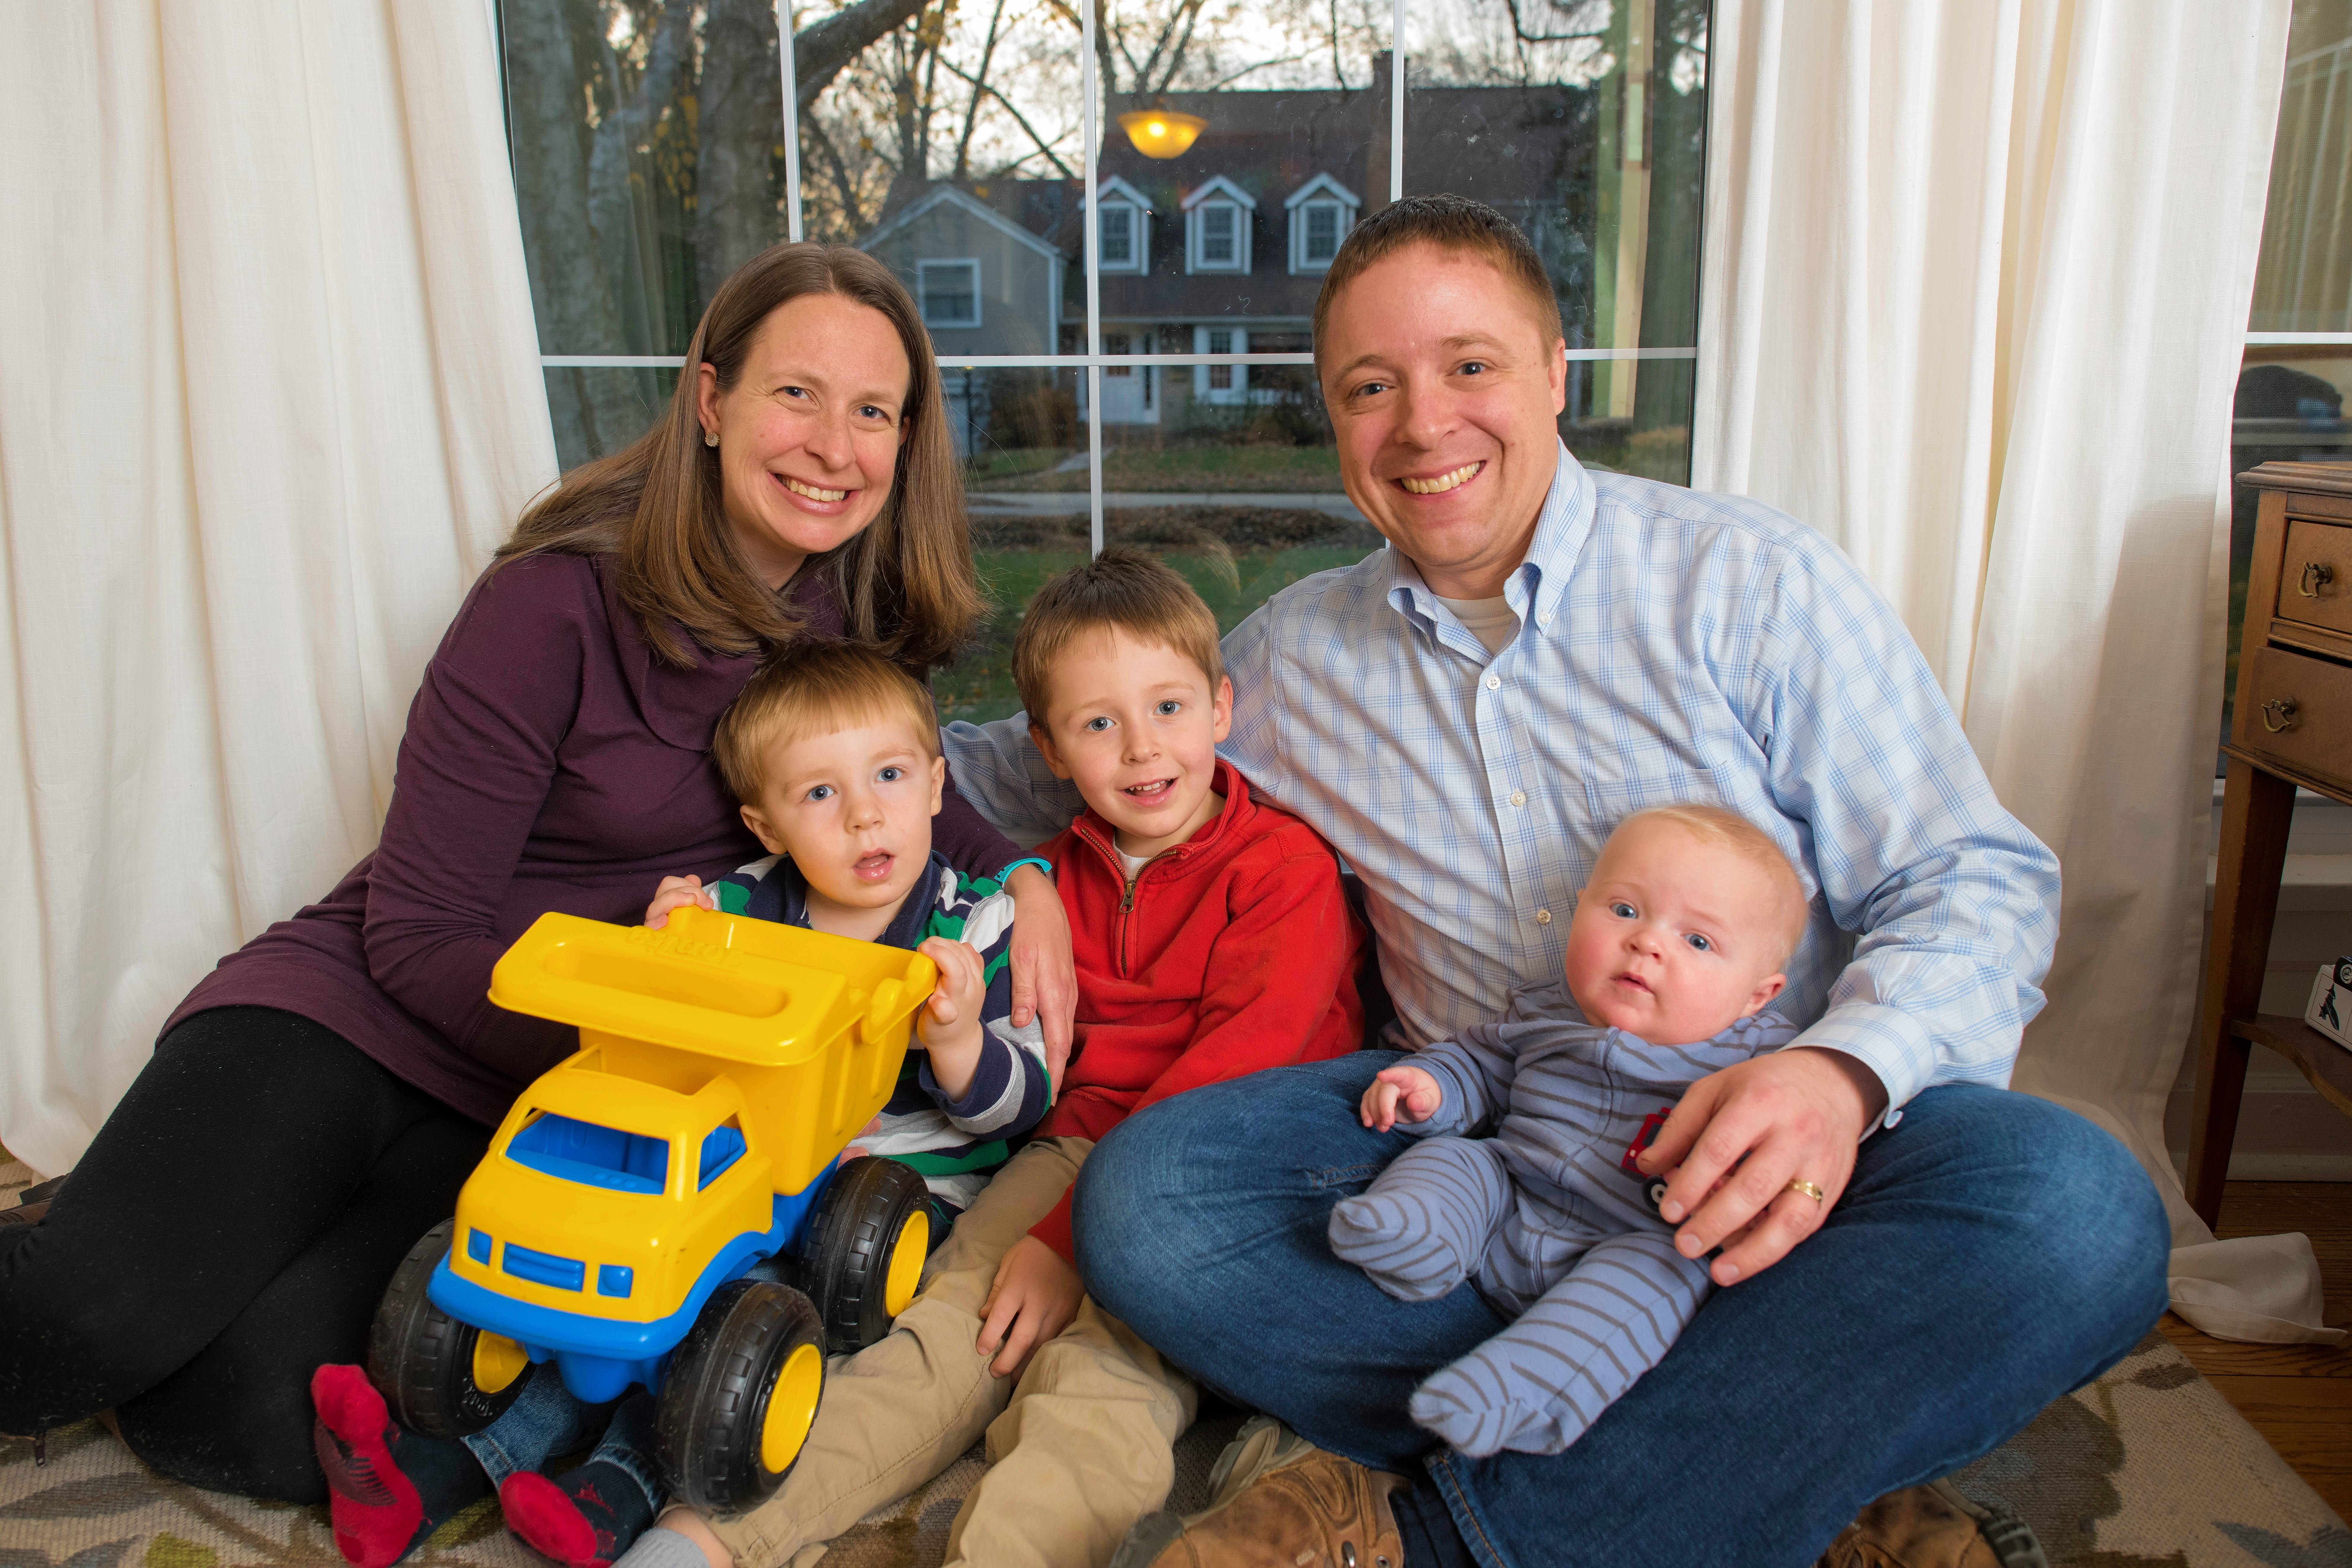 Sarah Trulley enjoys time at her Evanston home with her husband, Aaron, and three sons: 5-year-old Connor, 3-year-old Matthew and 7-month-old Christopher.